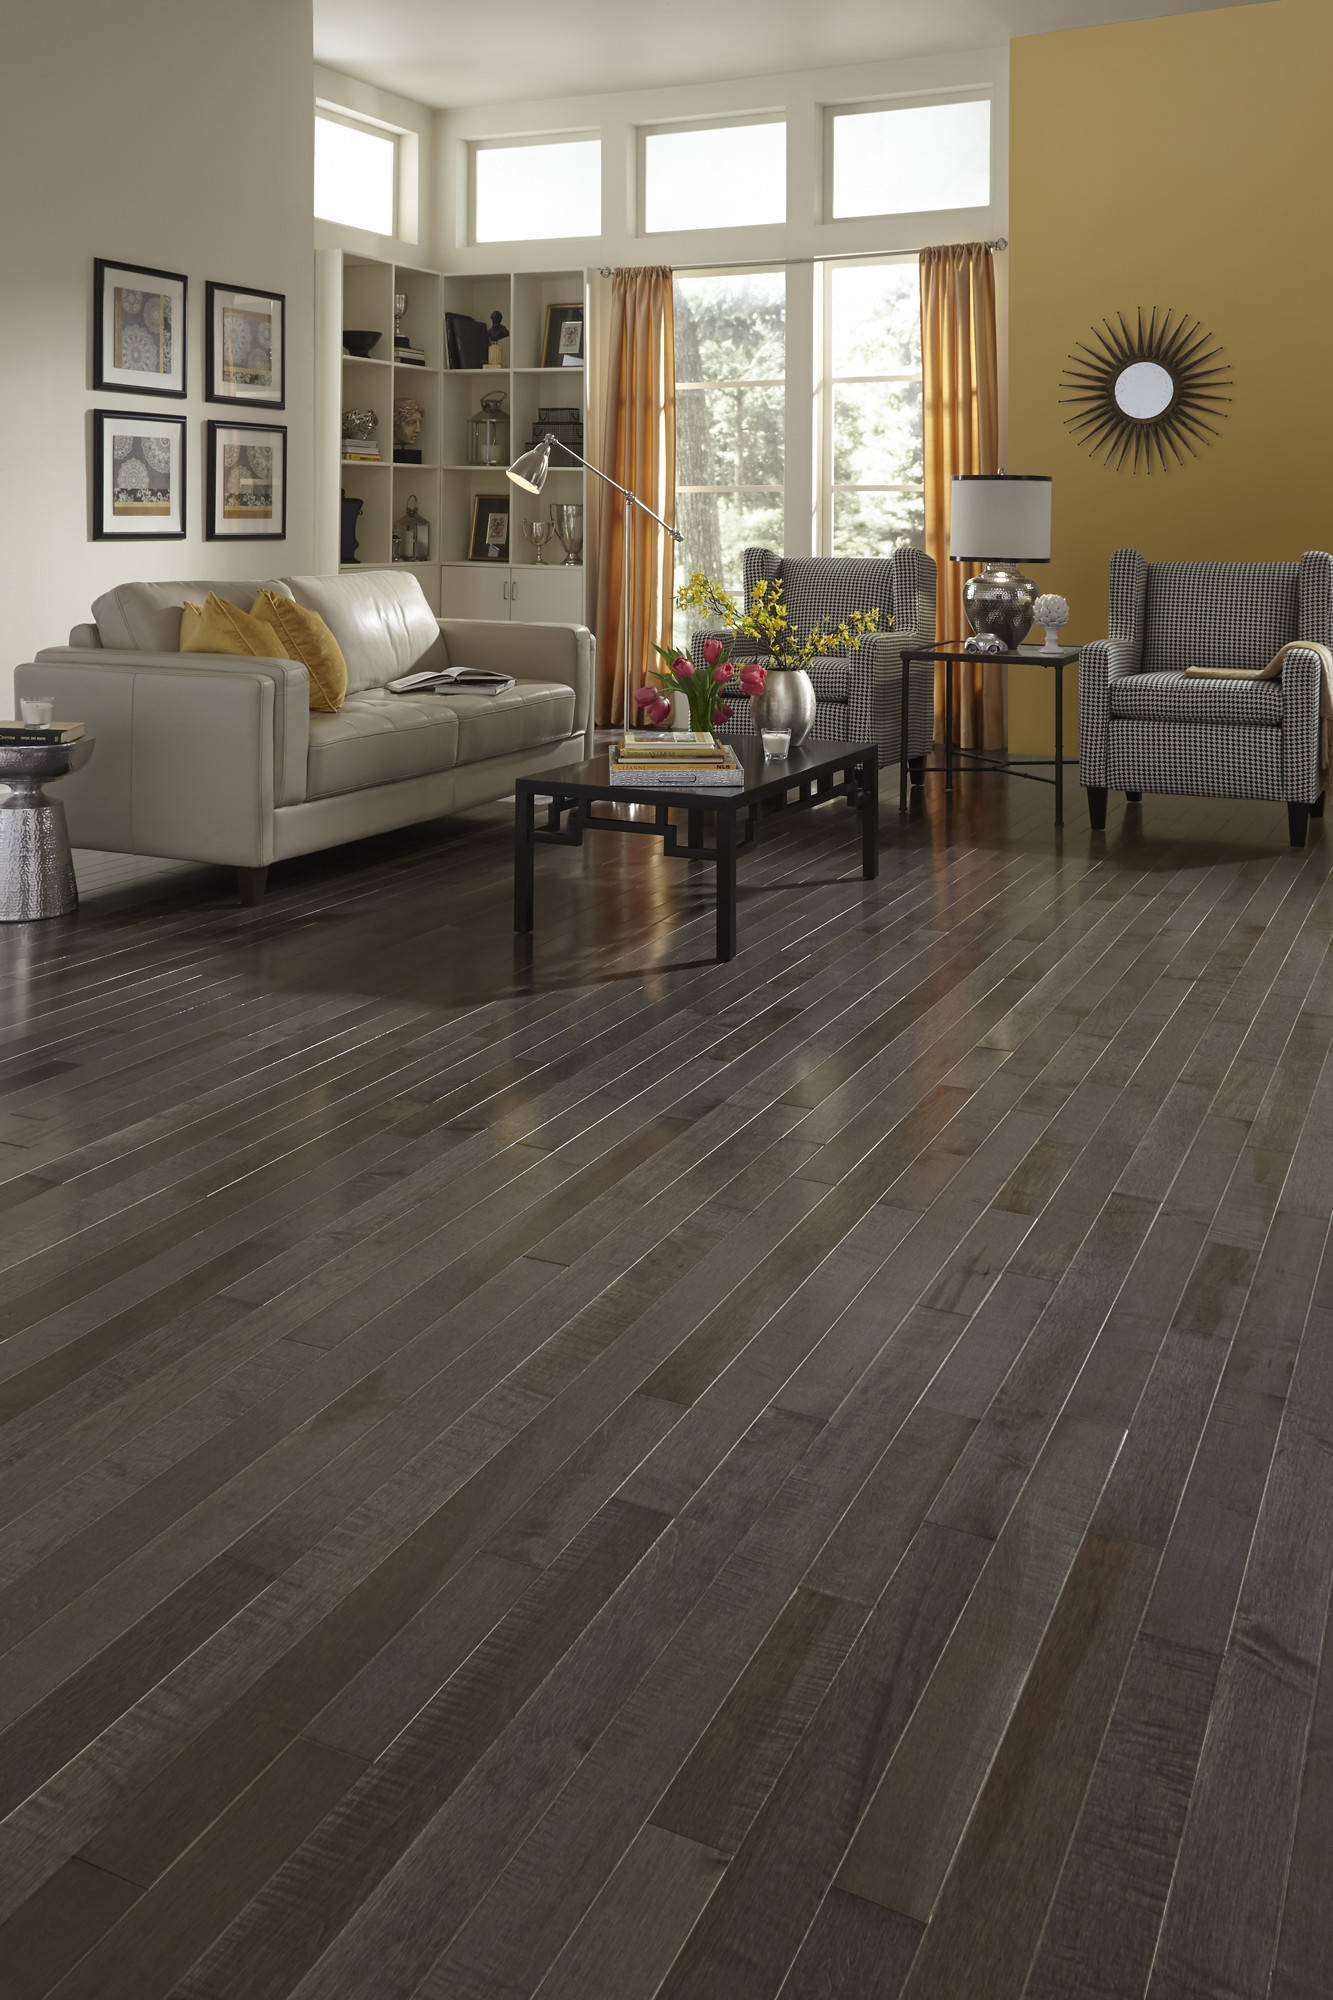 hardwood floor refinishing eau claire wi of hardwood floors vs carpet floor with refinishing hardwood floors hardwood floors vs carpet august s top floors social